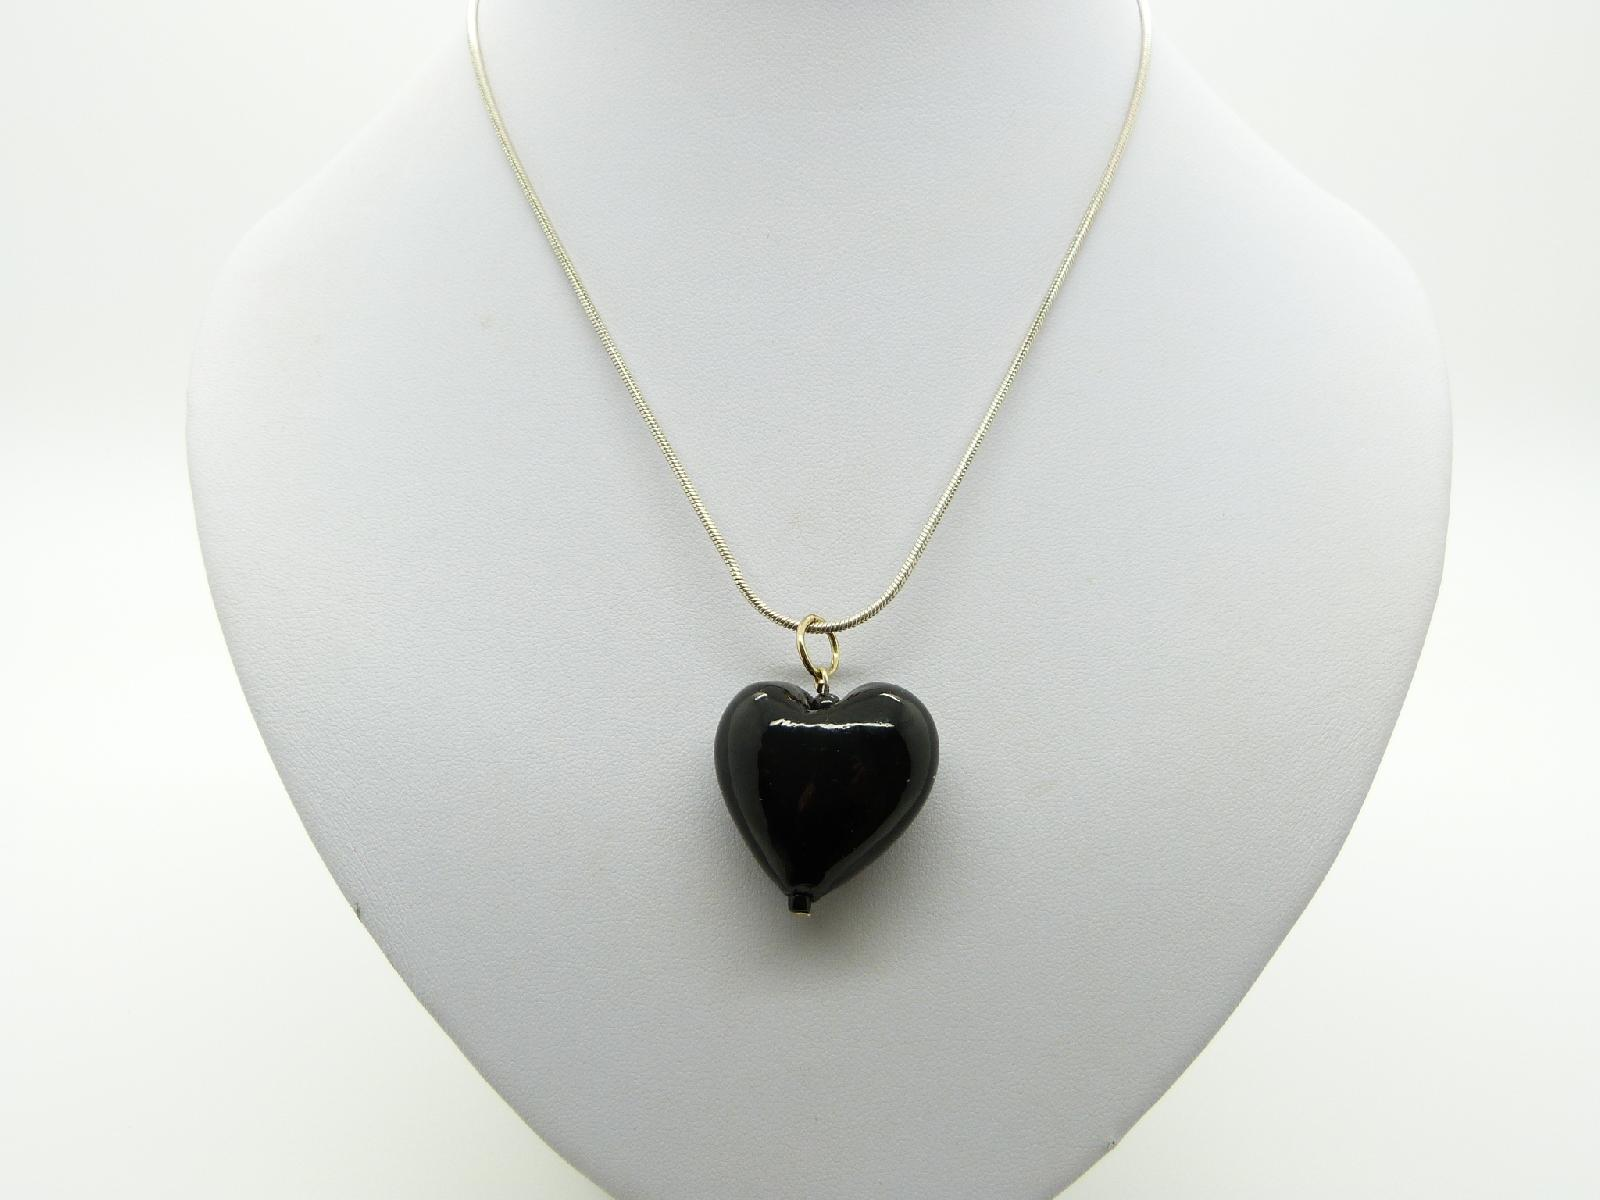 Pretty Black Glass Heart Pendant with Silvertone Snake Chain